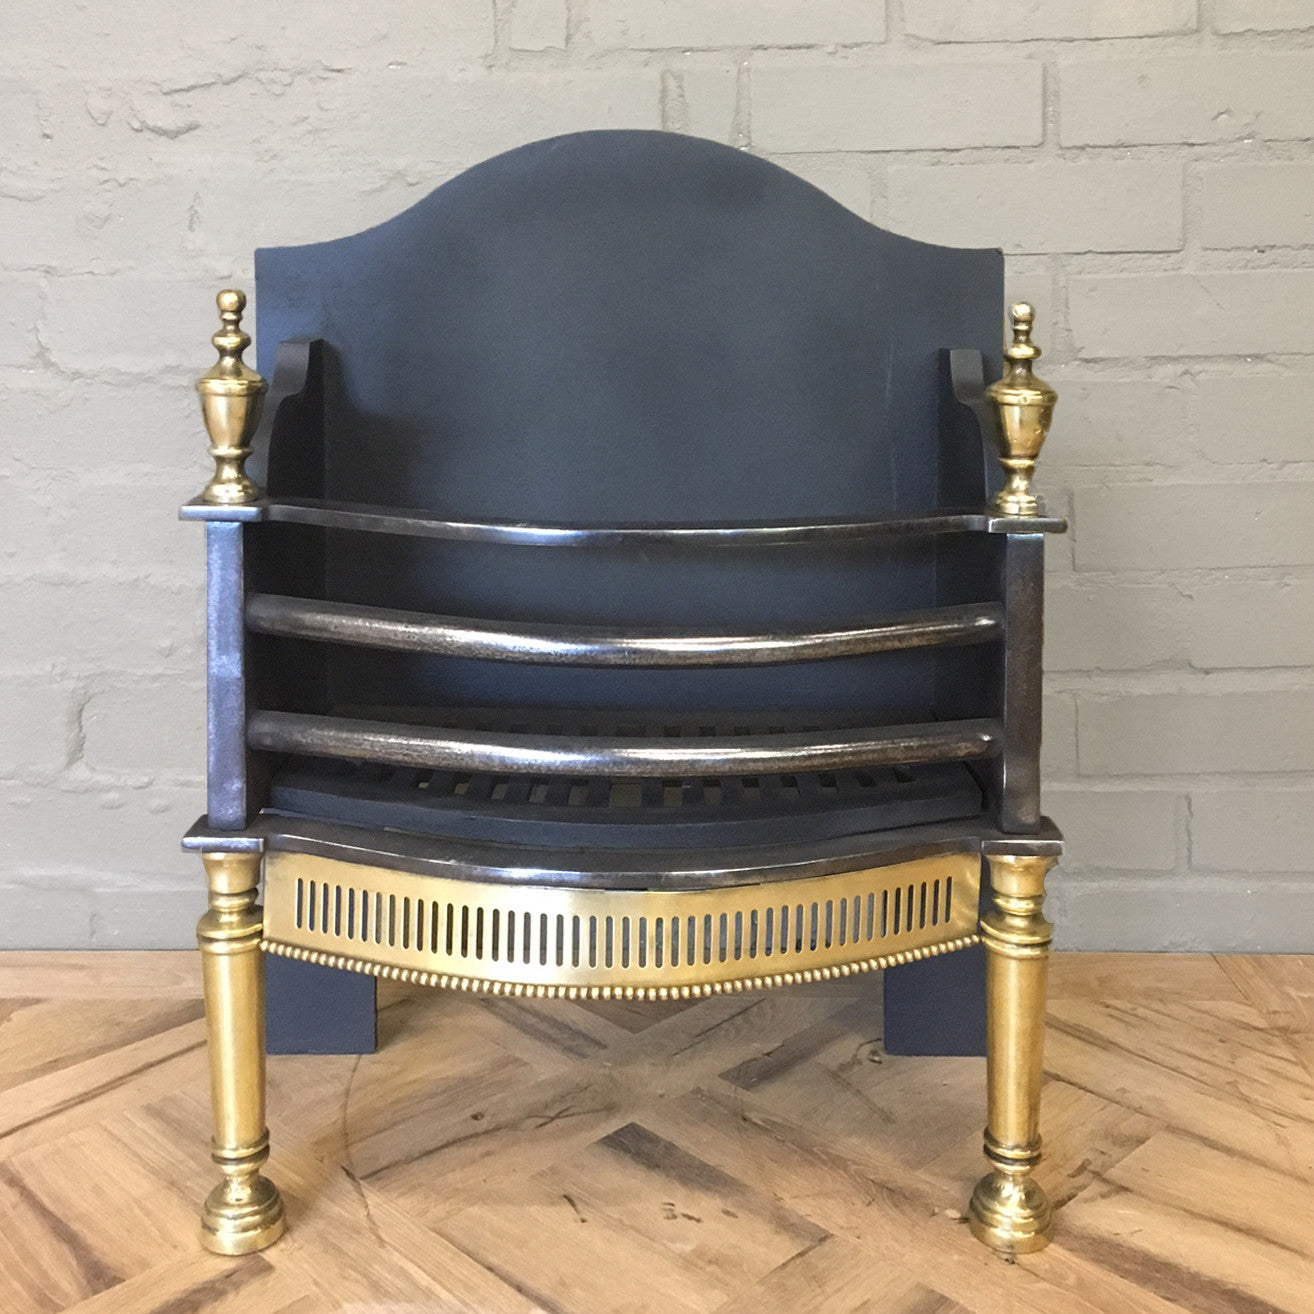 Reclaimed Cast Iron and Brass Fire Basket - architectural-forum